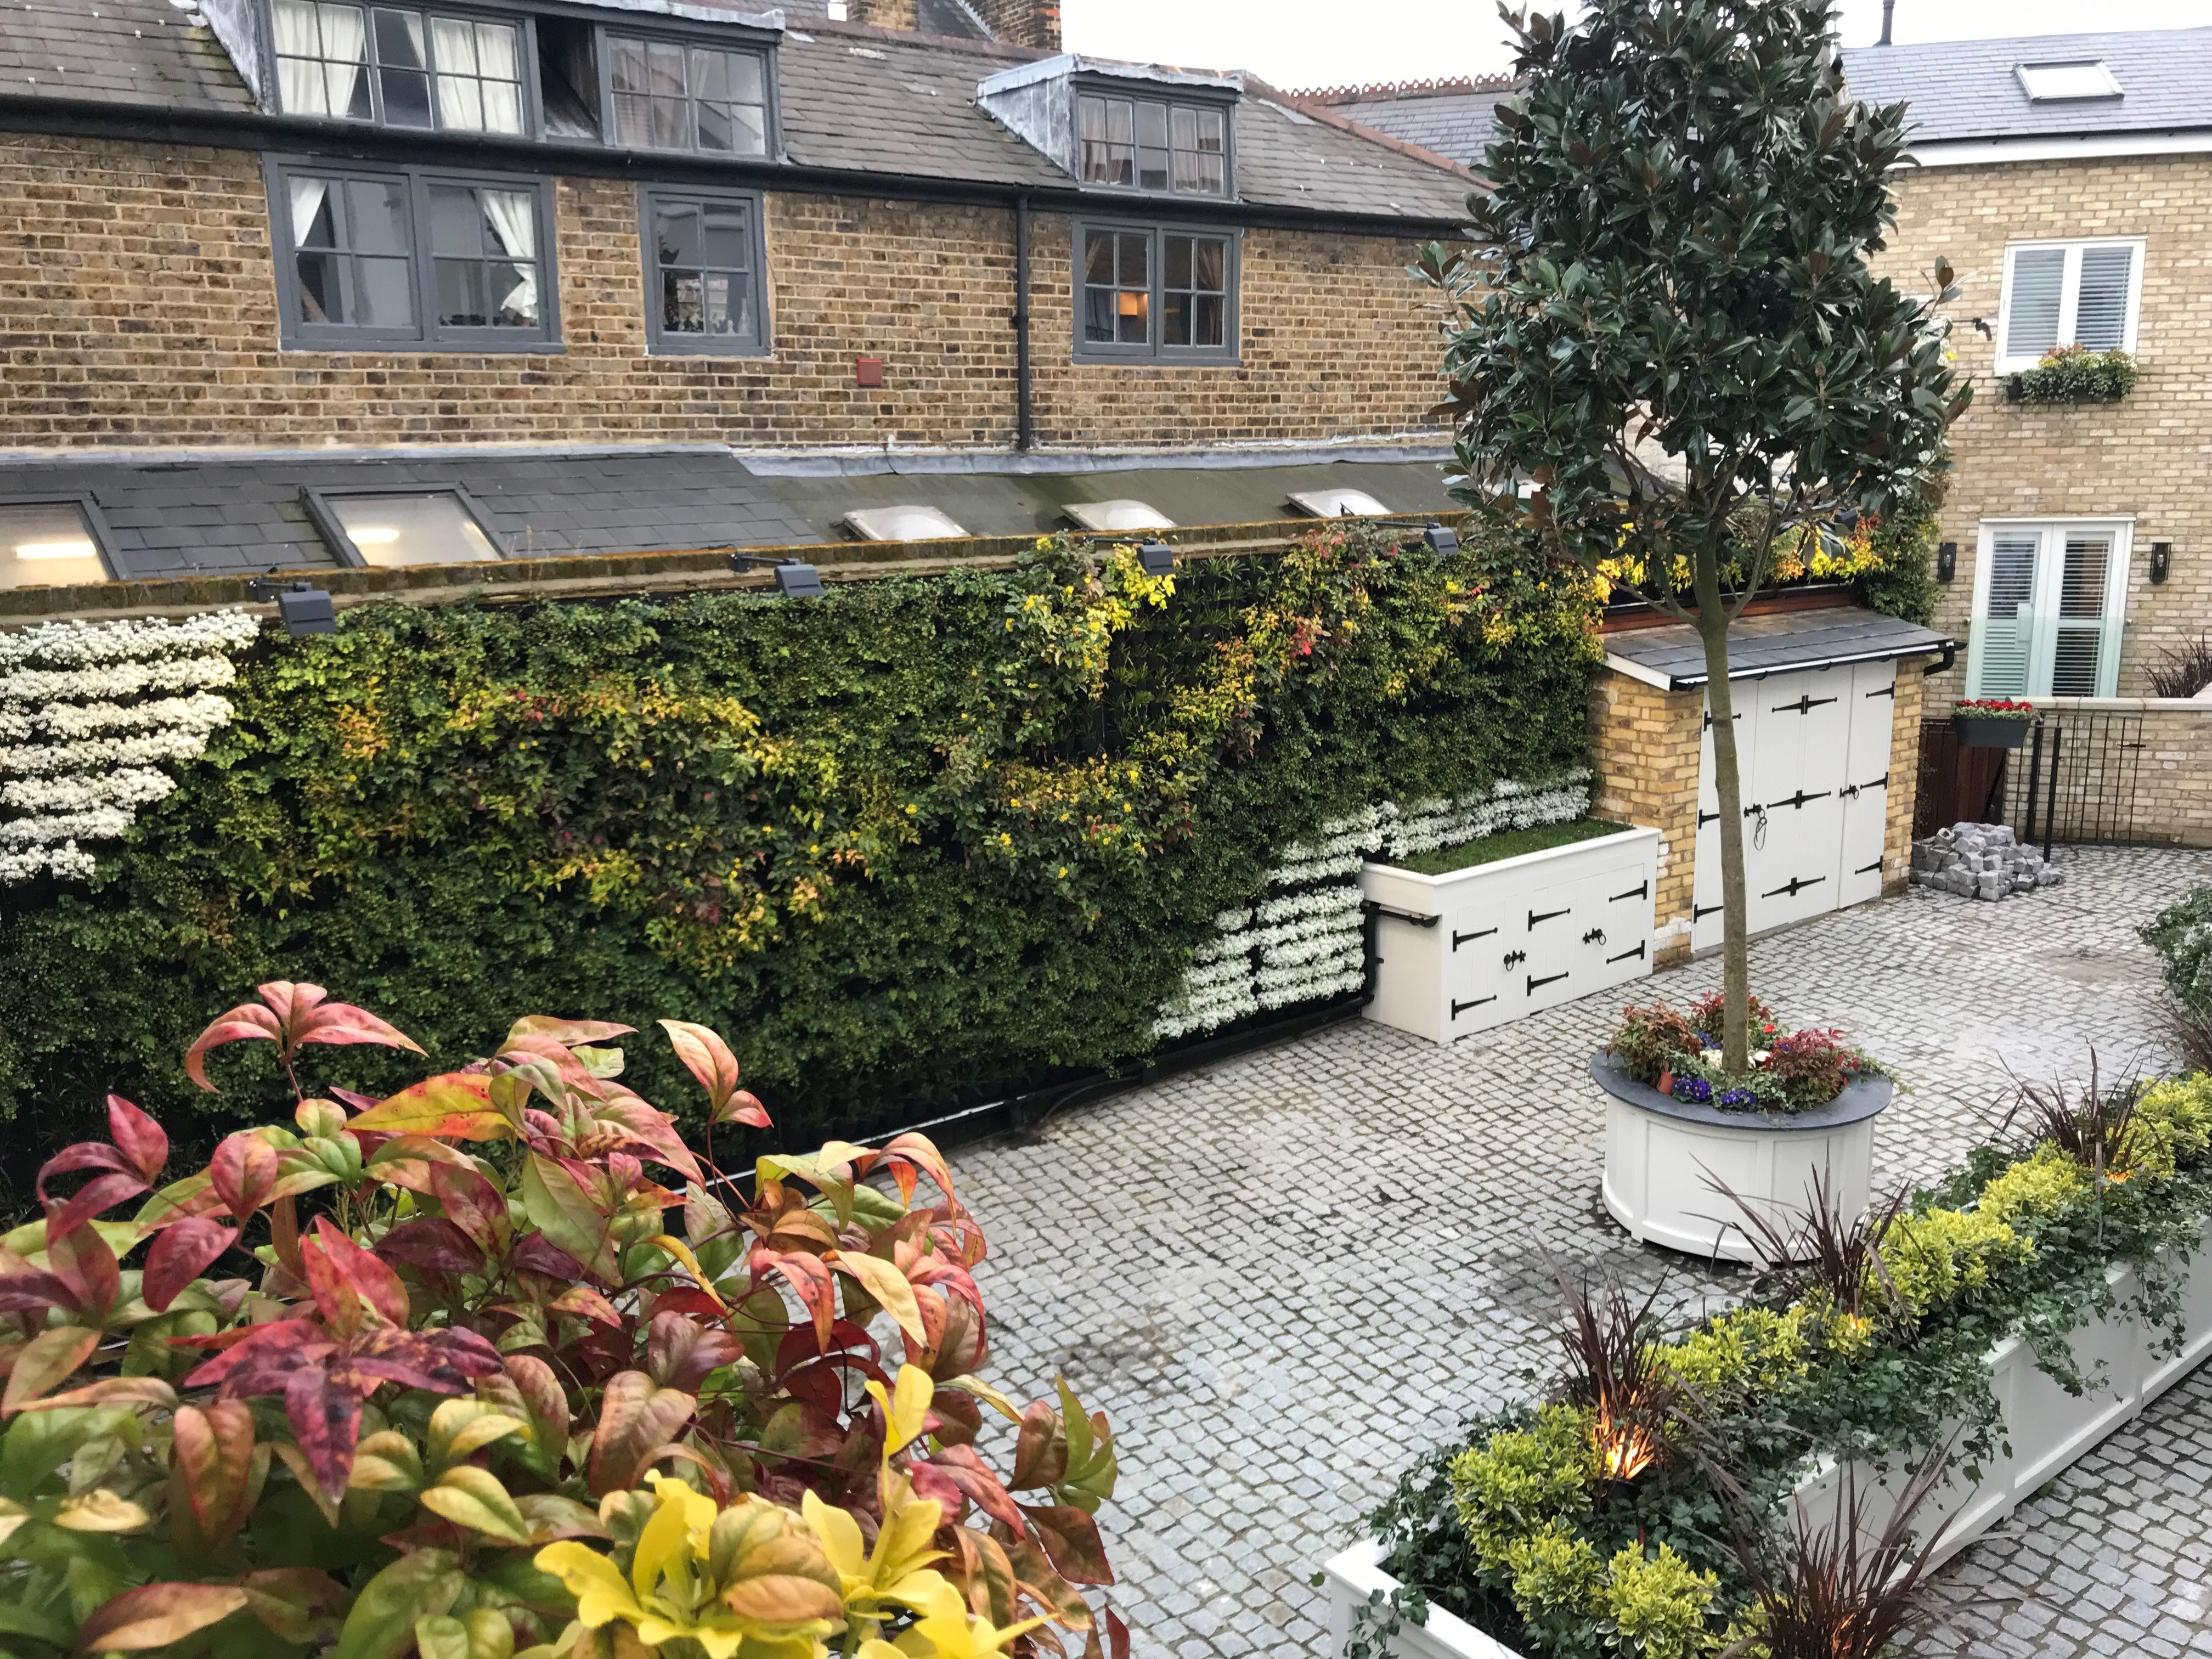 Living Walls for Property Developers Image of courtyard garden with Living Wall